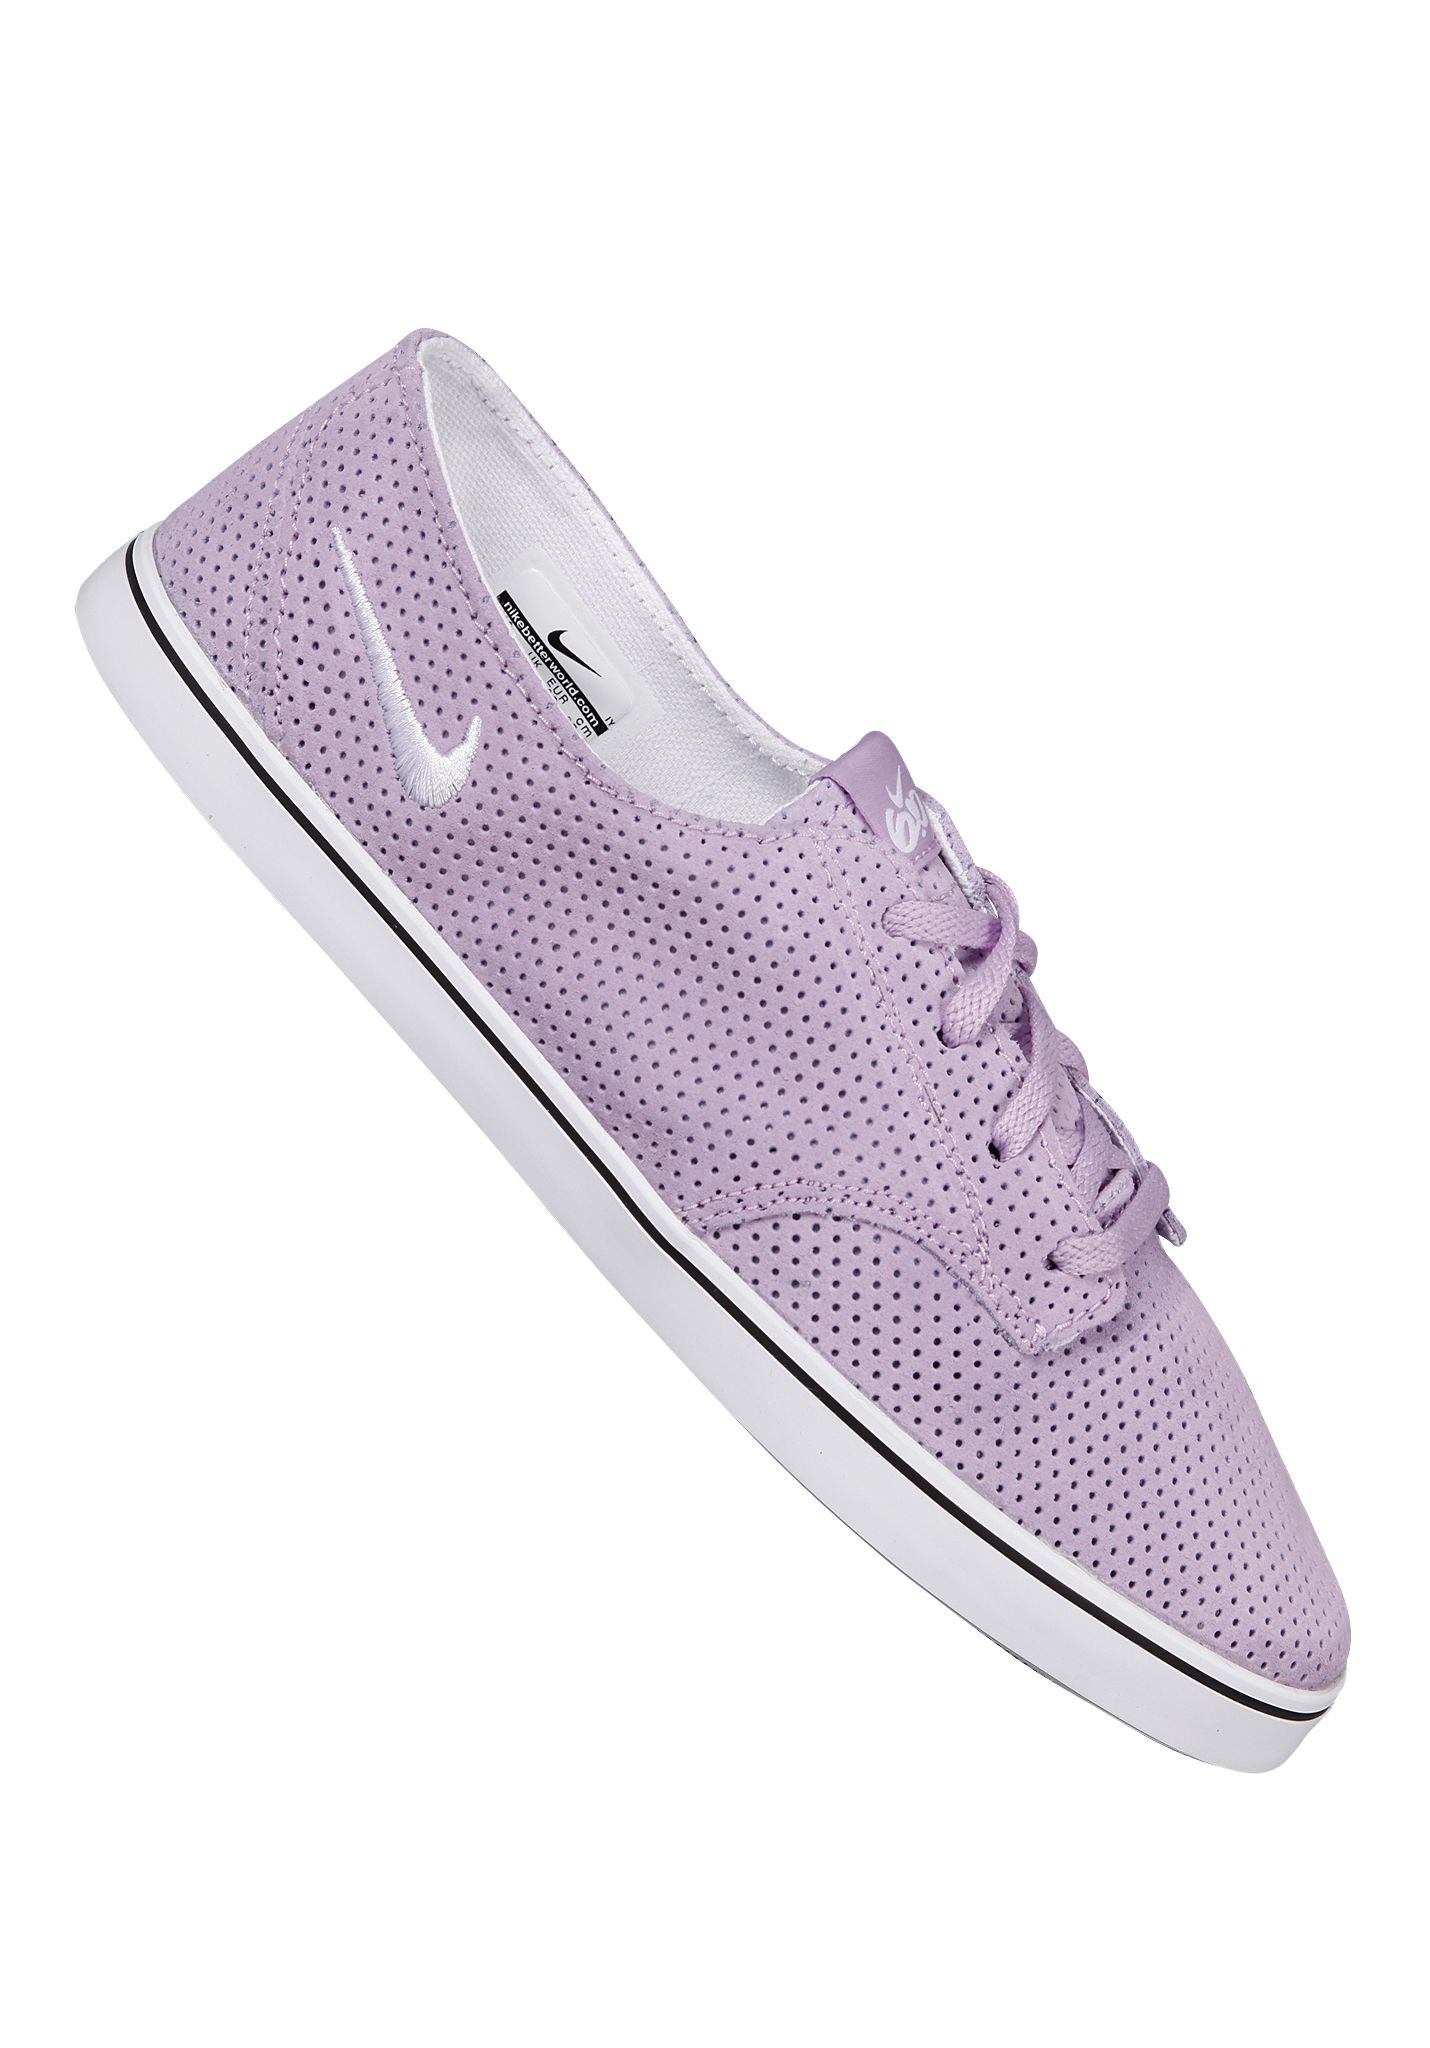 aeb2ca146f4a NIKE SB Braata Lite - Sneakers for Women - Purple - Planet Sports